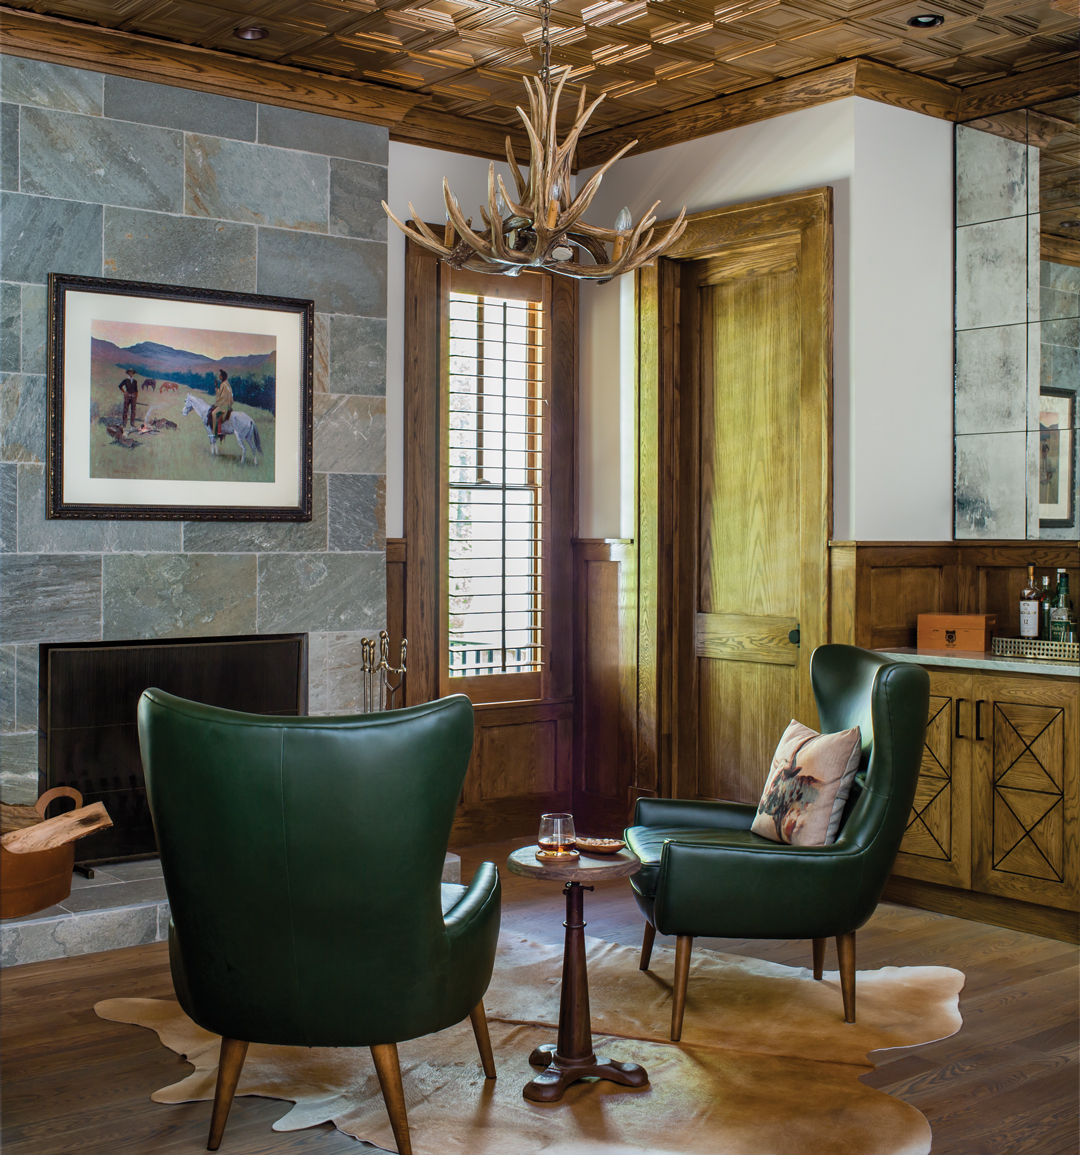 Room Envy: This den has a Western lodge vibe and a built-in bar